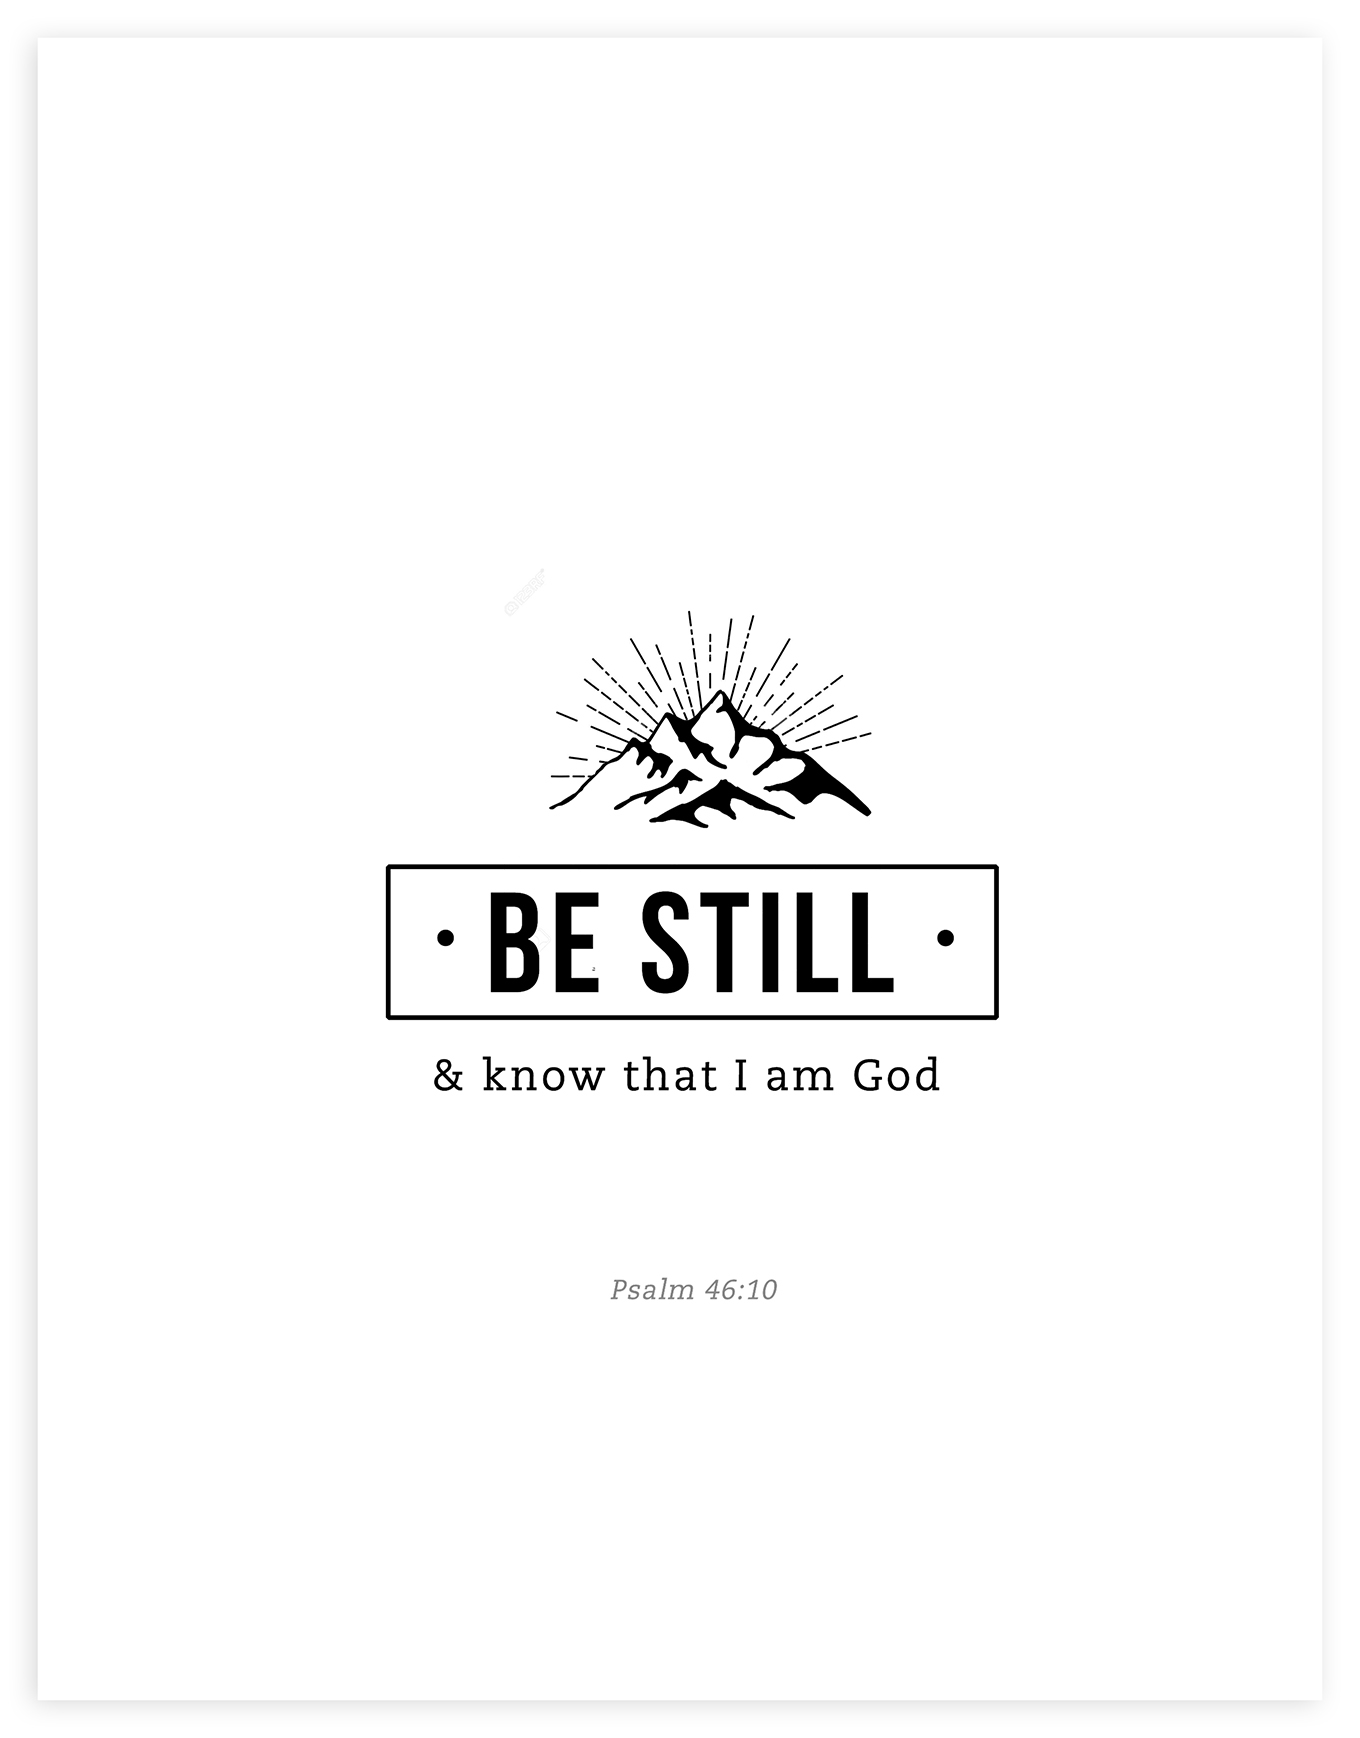 2020 Back to School Theme - Be Still and Know that I am God printable.